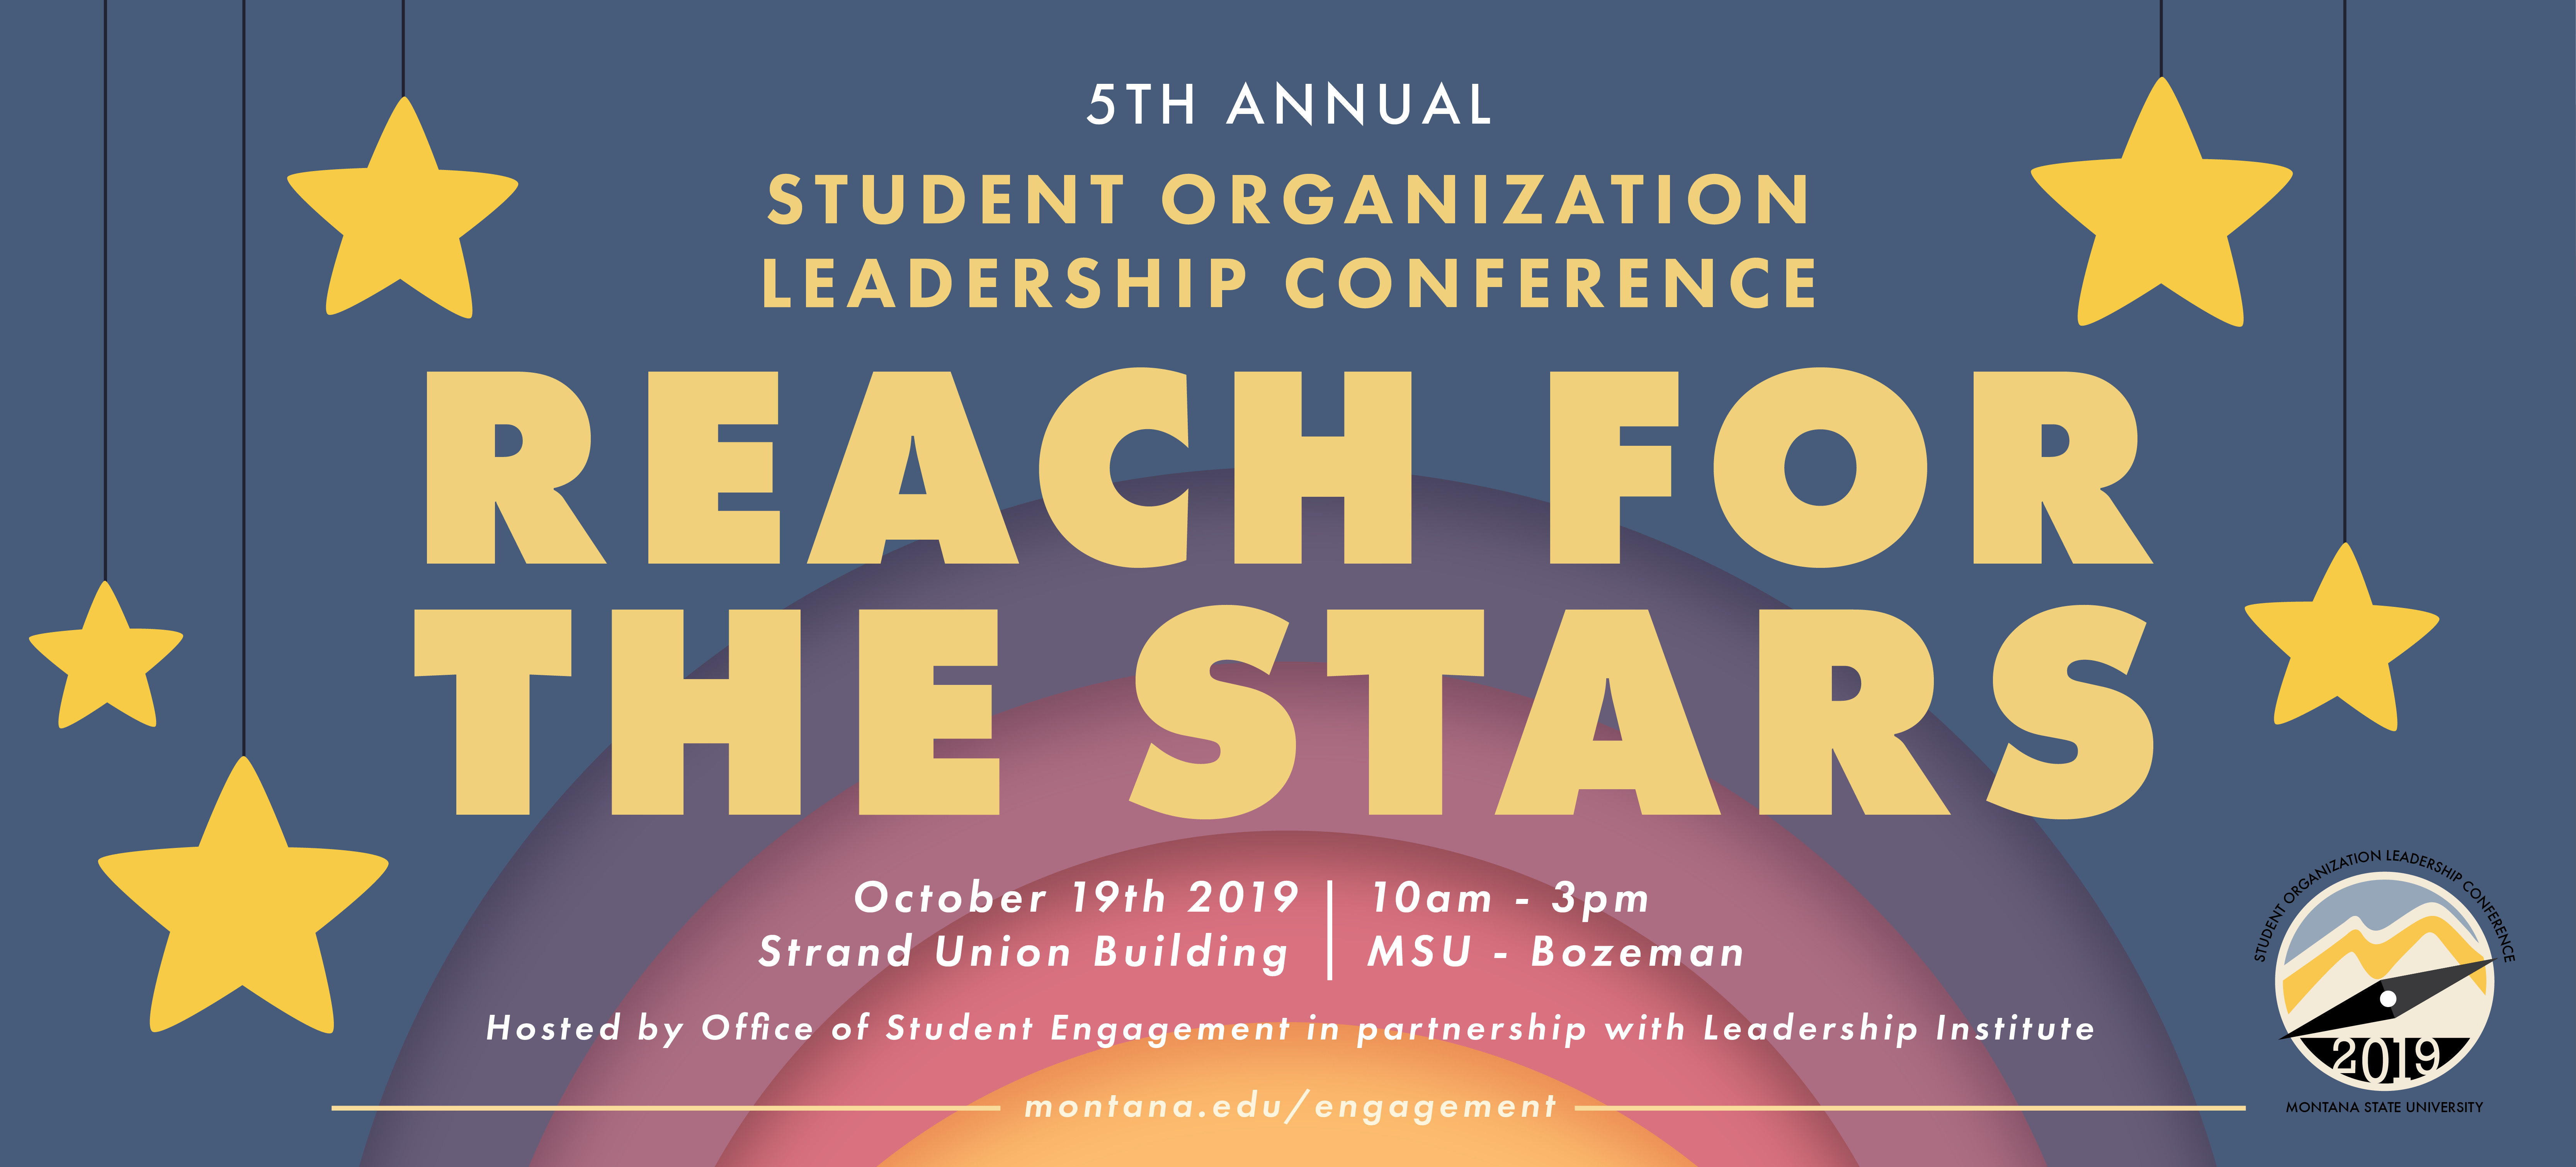 5th annual student organization leadership conference reach for the stars october 19 10am-3pm strand union building in partnership with the office of student engagement and leadership institute